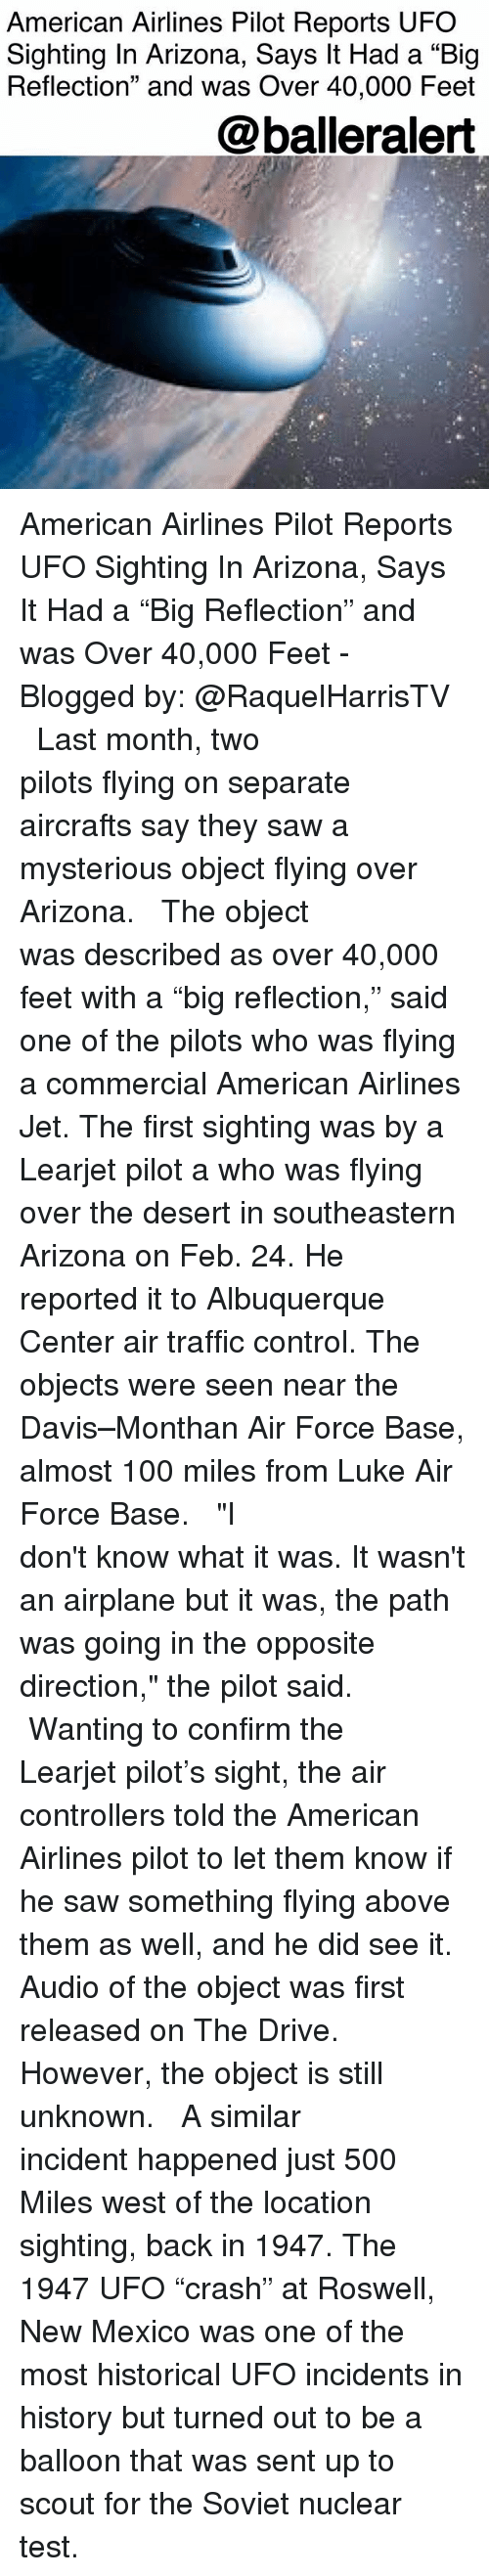 "500 Miles: American Airlines Pilot Reports UFO  Sighting In Arizona, Says It Had a ""Big  Reflection"" and was Over 40,000 Feet  @balleralert American Airlines Pilot Reports UFO Sighting In Arizona, Says It Had a ""Big Reflection"" and was Over 40,000 Feet - Blogged by: @RaquelHarrisTV ⠀⠀⠀⠀⠀⠀⠀⠀⠀ ⠀⠀⠀⠀⠀⠀⠀⠀⠀ Last month, two pilots flying on separate aircrafts say they saw a mysterious object flying over Arizona. ⠀⠀⠀⠀⠀⠀⠀⠀⠀ ⠀⠀⠀⠀⠀⠀⠀⠀⠀ The object was described as over 40,000 feet with a ""big reflection,"" said one of the pilots who was flying a commercial American Airlines Jet. The first sighting was by a Learjet pilot a who was flying over the desert in southeastern Arizona on Feb. 24. He reported it to Albuquerque Center air traffic control. The objects were seen near the Davis–Monthan Air Force Base, almost 100 miles from Luke Air Force Base. ⠀⠀⠀⠀⠀⠀⠀⠀⠀ ⠀⠀⠀⠀⠀⠀⠀⠀⠀ ""I don't know what it was. It wasn't an airplane but it was, the path was going in the opposite direction,"" the pilot said. ⠀⠀⠀⠀⠀⠀⠀⠀⠀ ⠀⠀⠀⠀⠀⠀⠀⠀⠀ Wanting to confirm the Learjet pilot's sight, the air controllers told the American Airlines pilot to let them know if he saw something flying above them as well, and he did see it. Audio of the object was first released on The Drive. However, the object is still unknown. ⠀⠀⠀⠀⠀⠀⠀⠀⠀ ⠀⠀⠀⠀⠀⠀⠀⠀⠀ A similar incident happened just 500 Miles west of the location sighting, back in 1947. The 1947 UFO ""crash"" at Roswell, New Mexico was one of the most historical UFO incidents in history but turned out to be a balloon that was sent up to scout for the Soviet nuclear test."